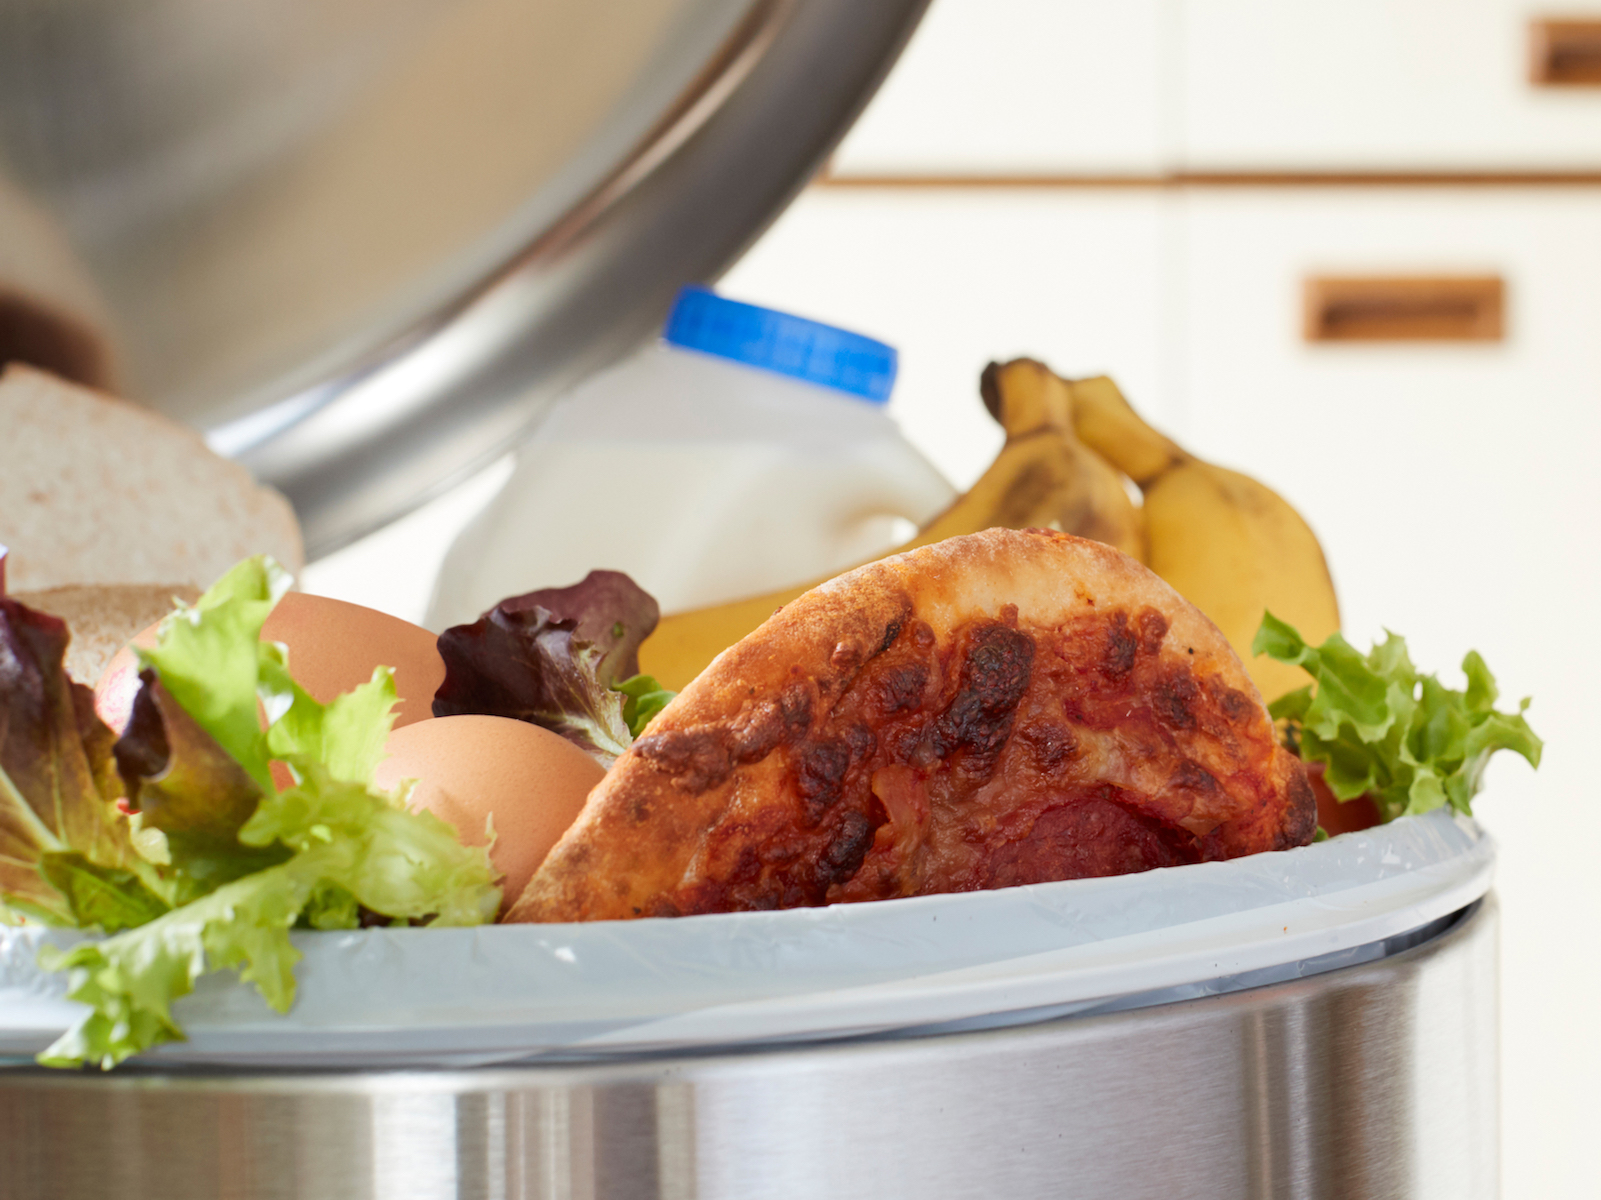 Trump Administration Plans to Start 'Winning' Against Food Waste